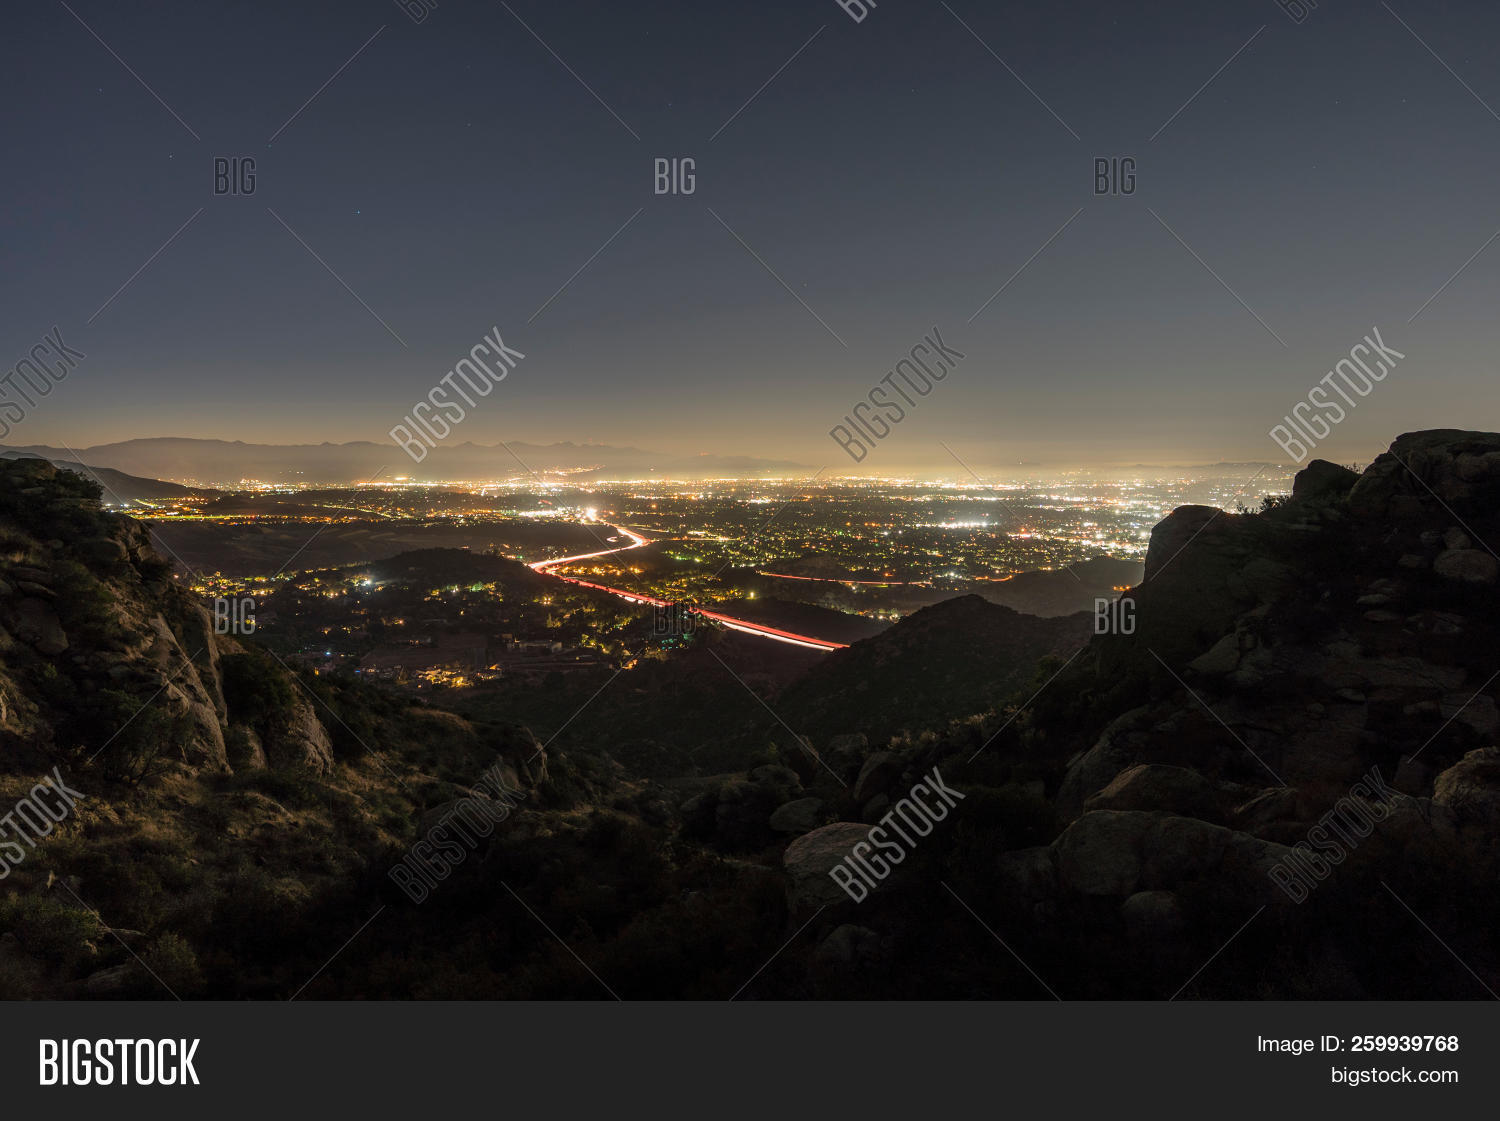 Los Angeles California Image & Photo (Free Trial) | Bigstock